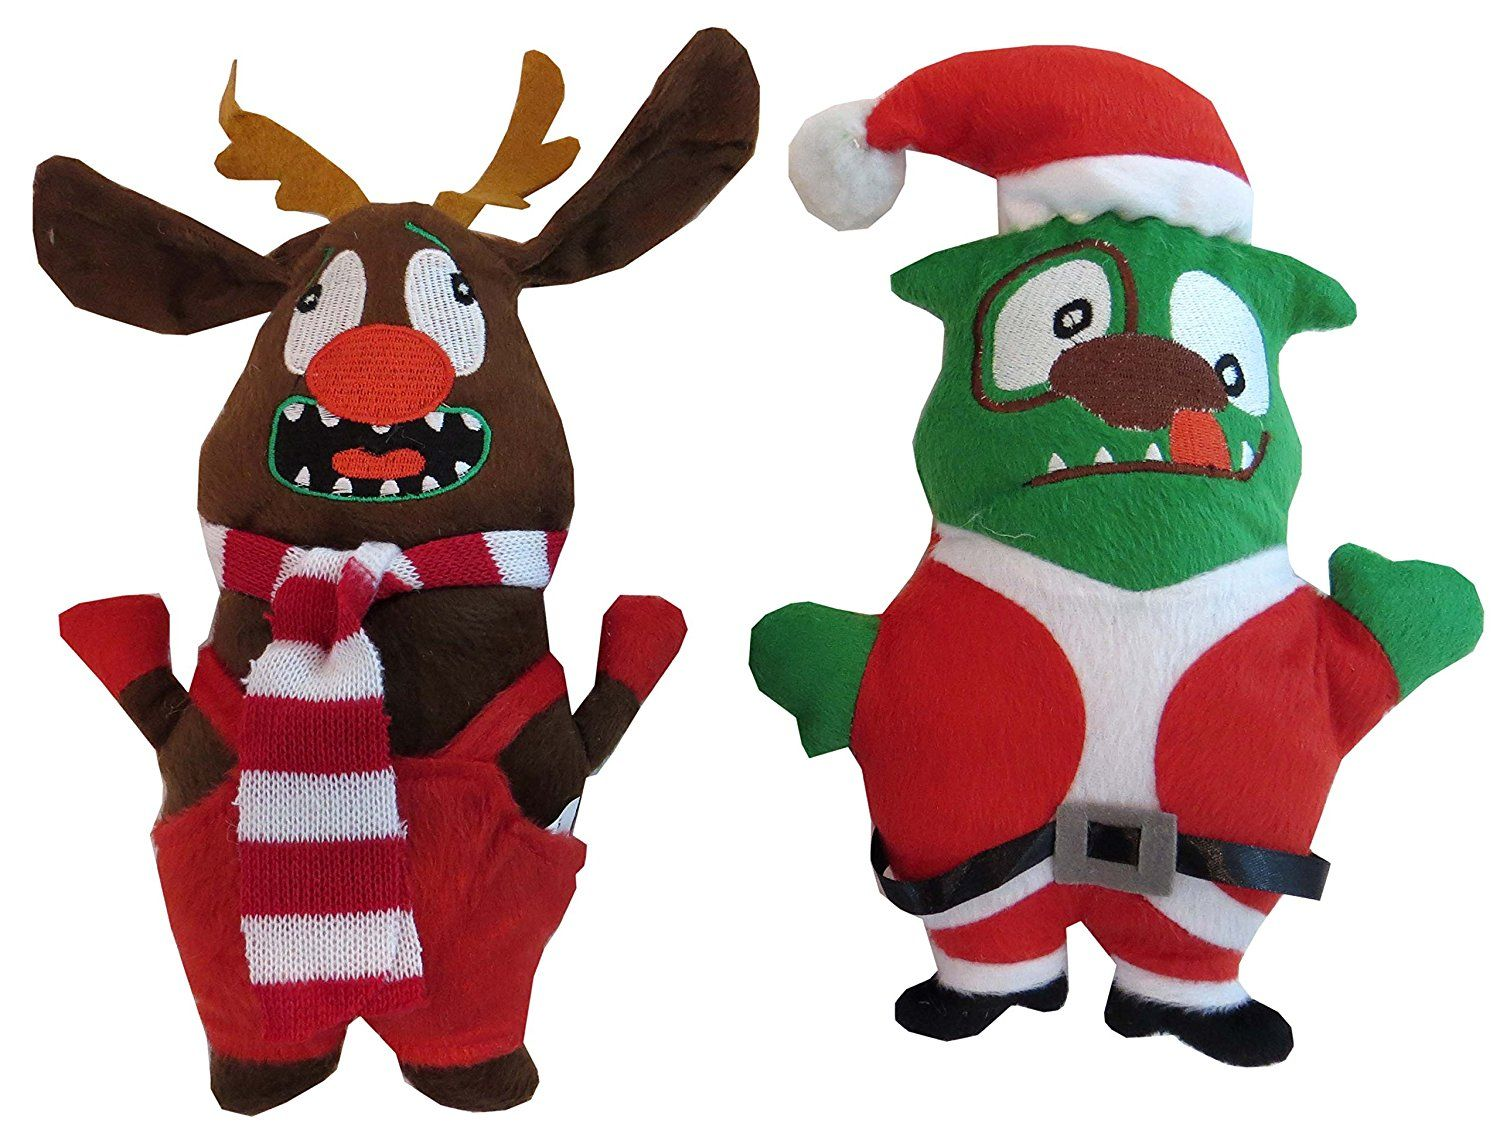 Dei Christmas Plush Ugly Dog Toy Set 11 H Review More